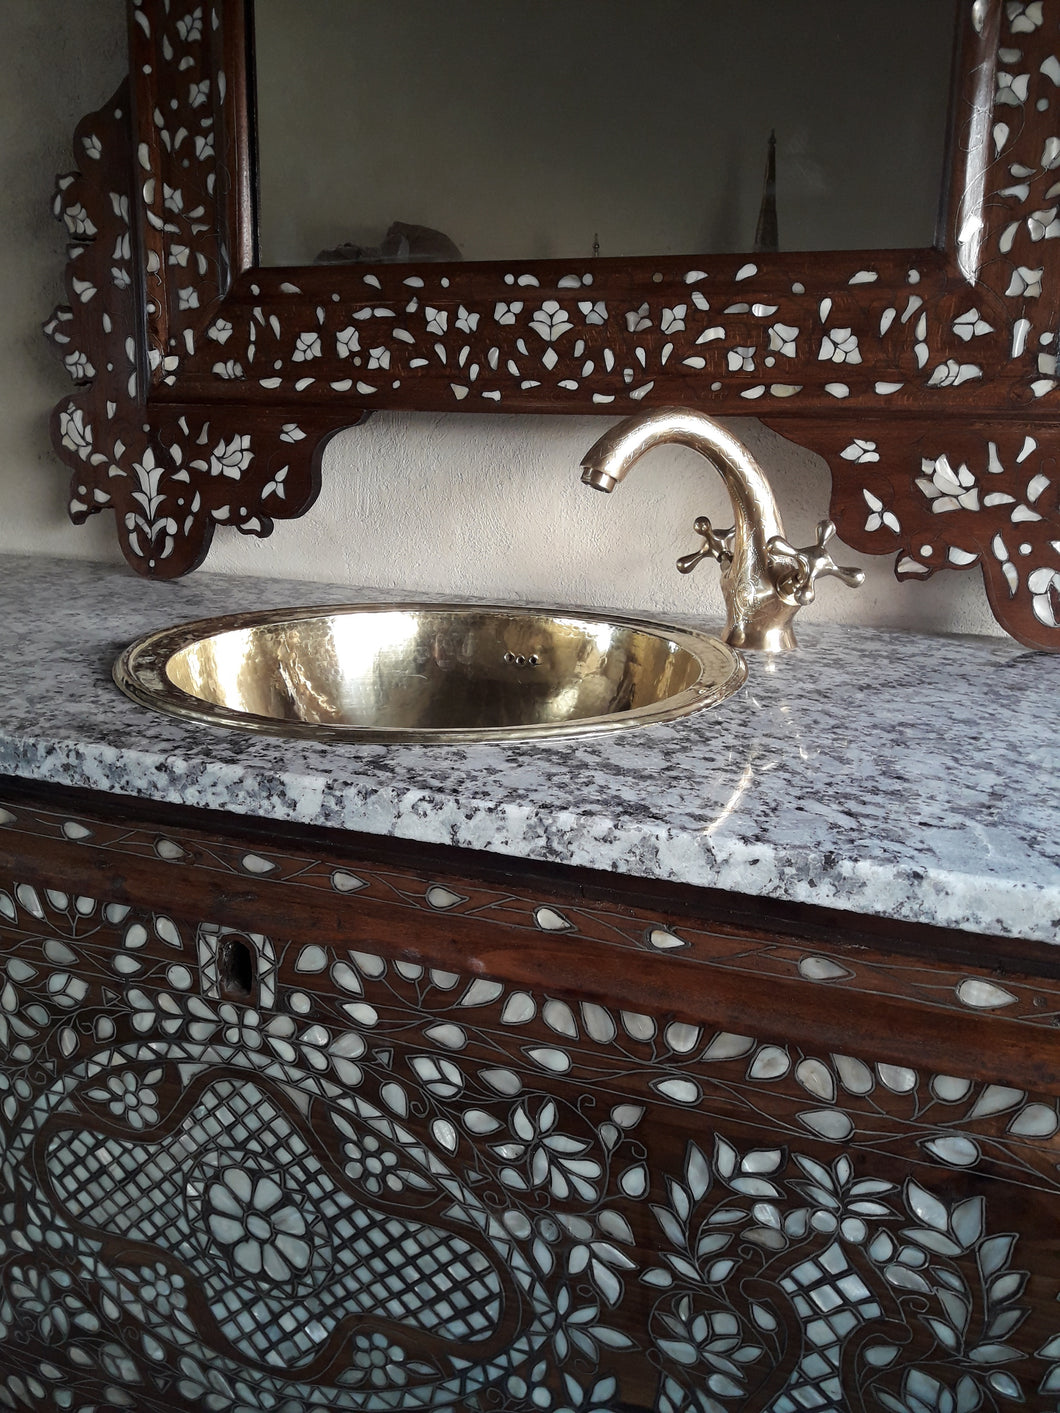 Antique syrian mother of pearl vanity sink with mirror & brass faucet